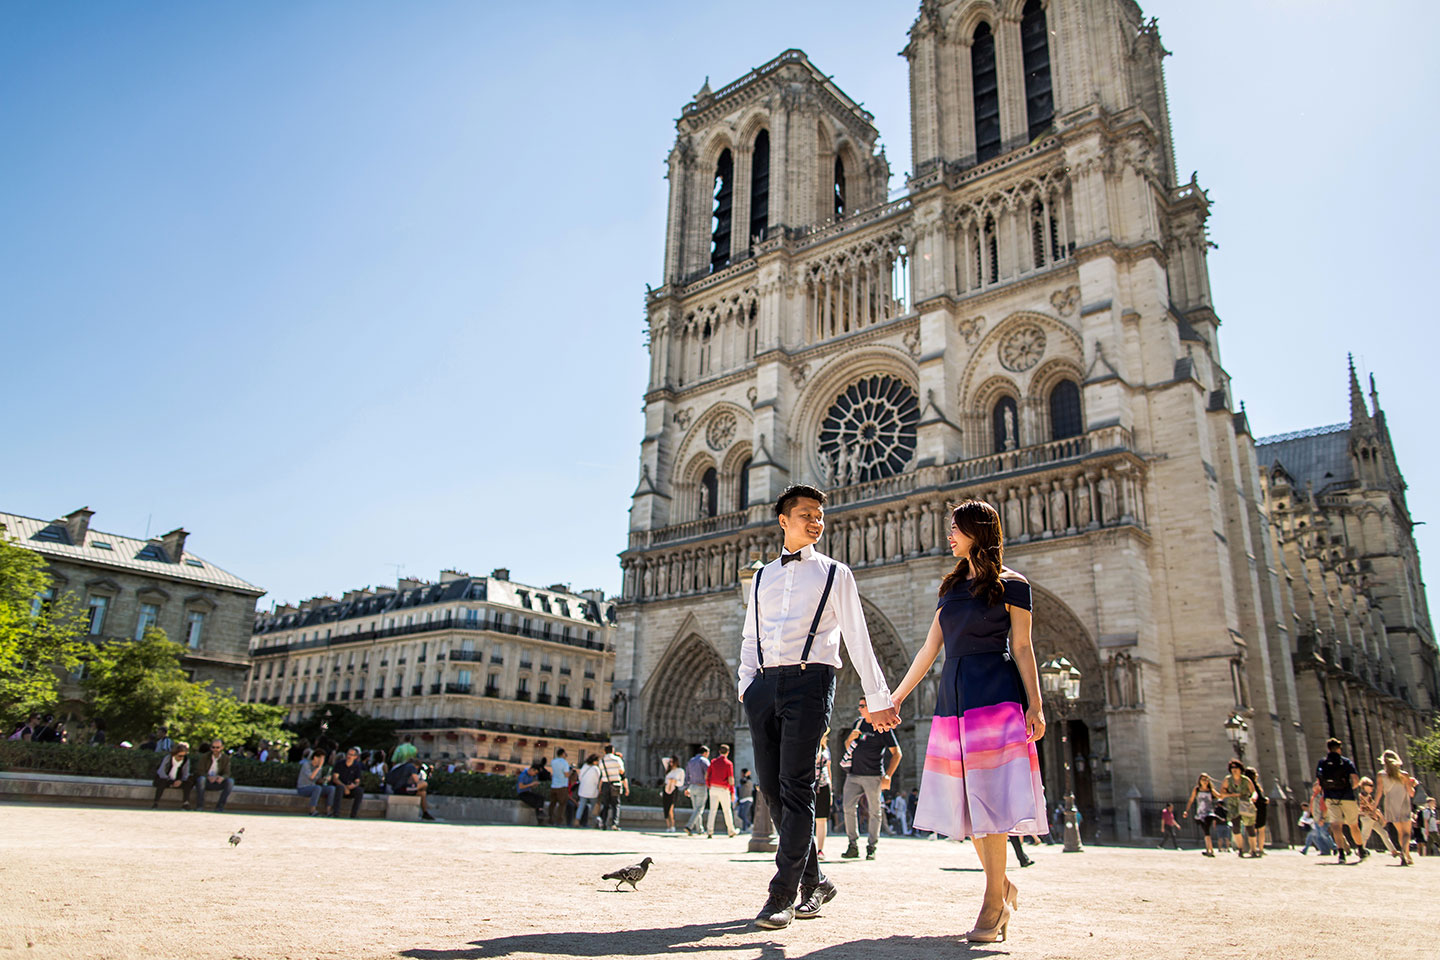 Paris pre wedding in front of the Notre Dame church